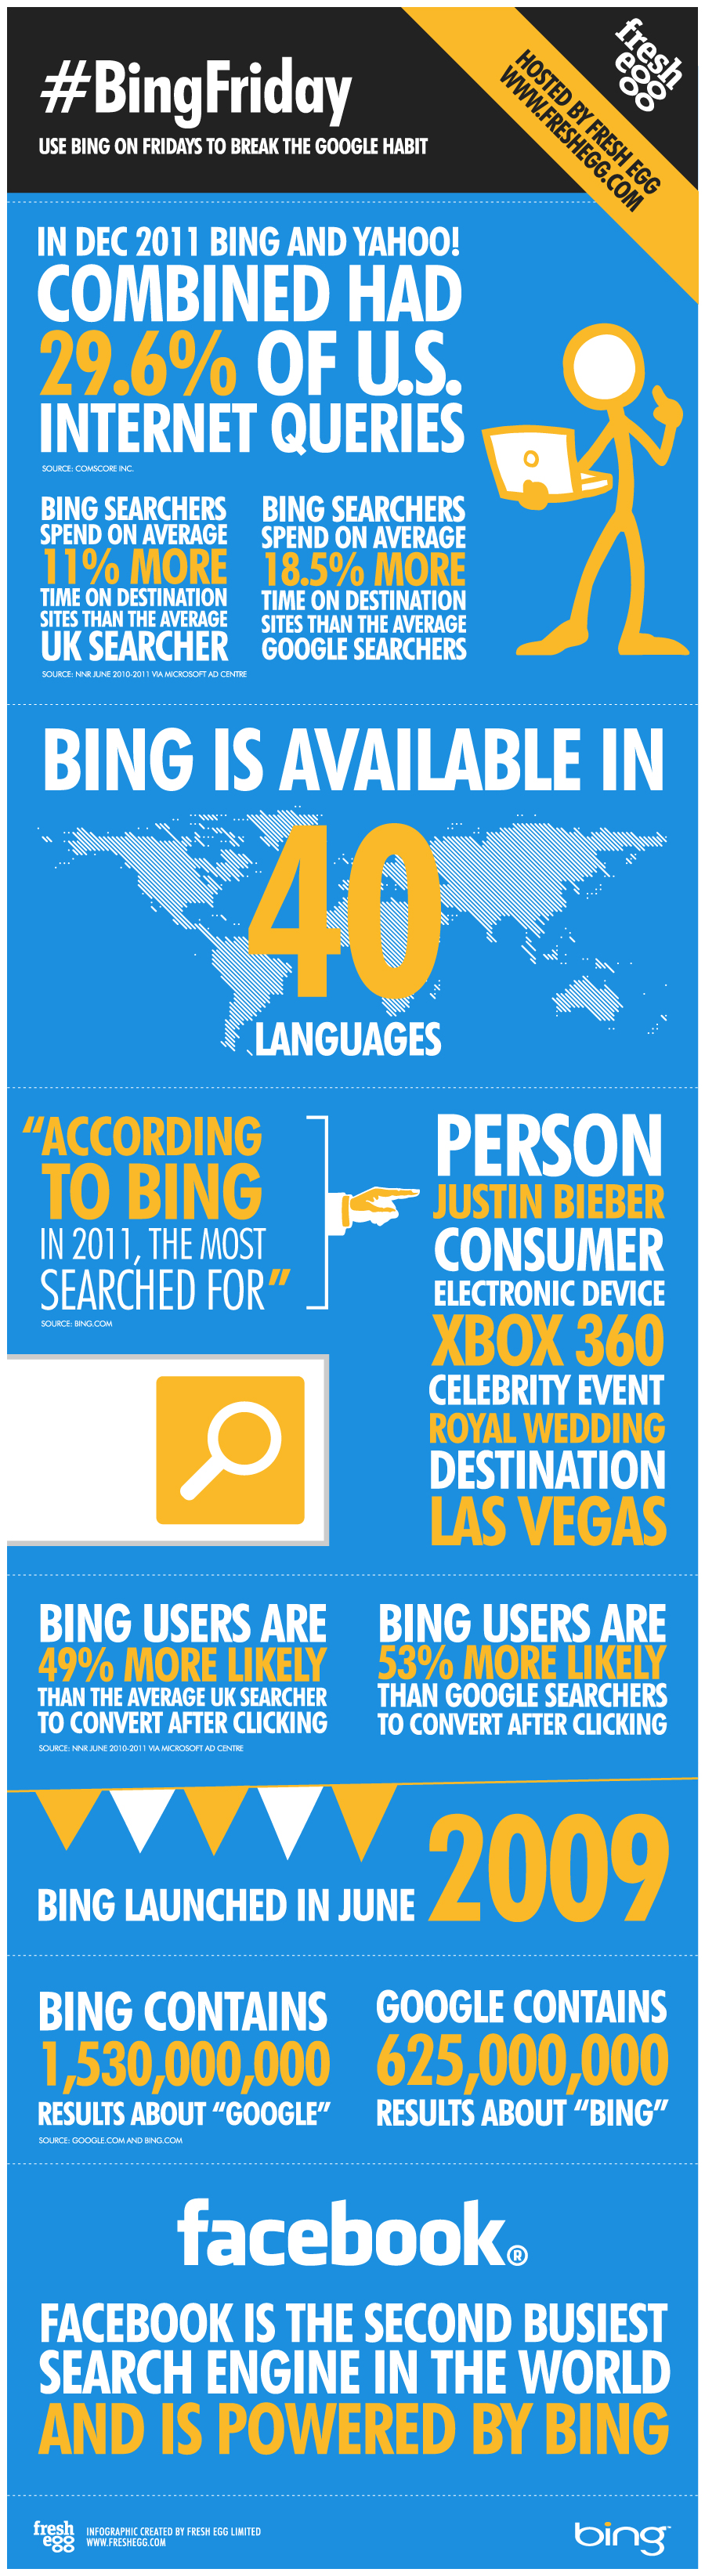 Some Startling Statistics on Bing Users